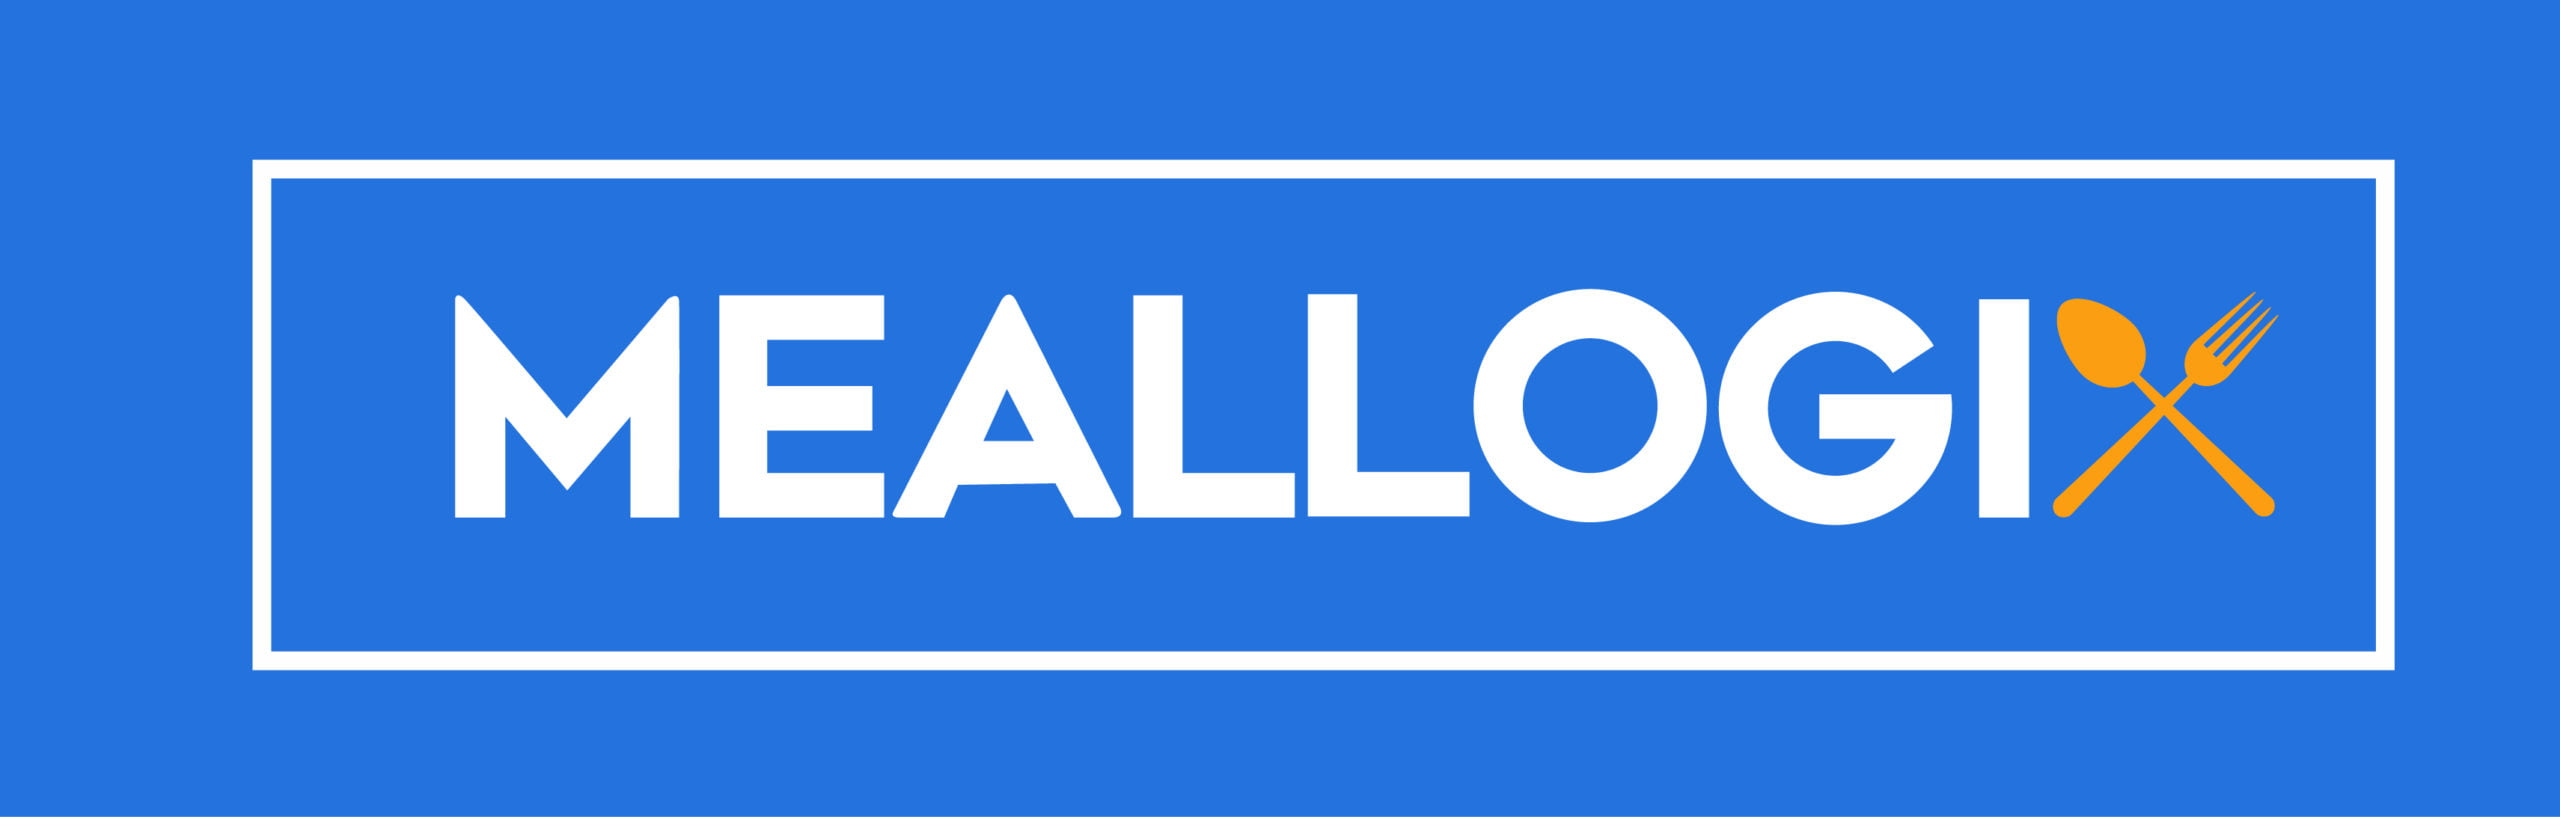 Meallogix®, Enterprise Resource Planning Software for the Meal Prep Sector, Launches to Market